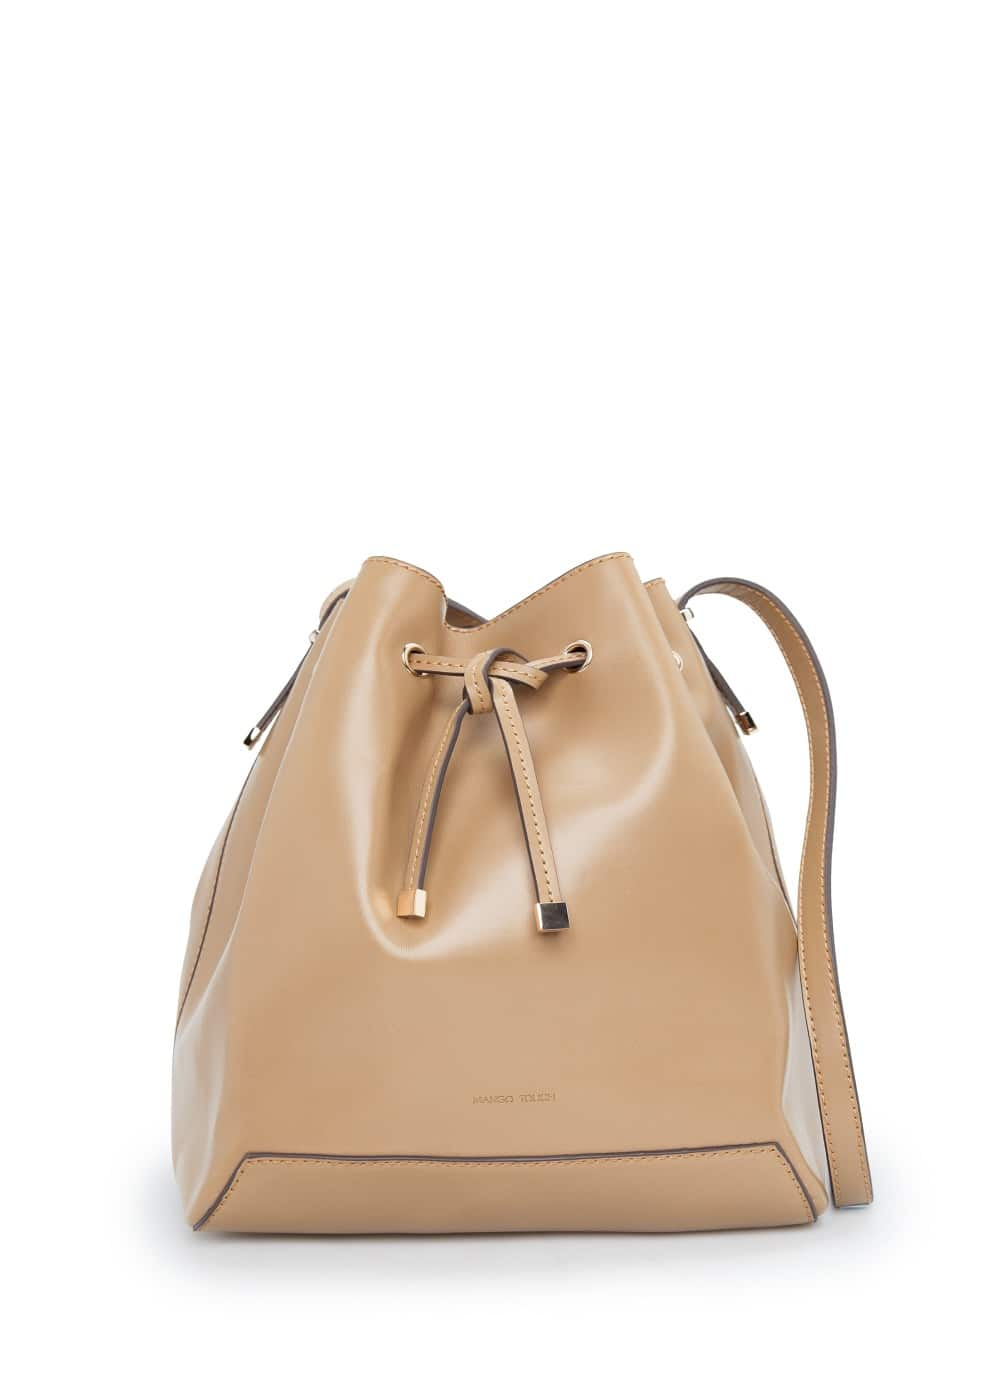 Bucket bag met contrasten